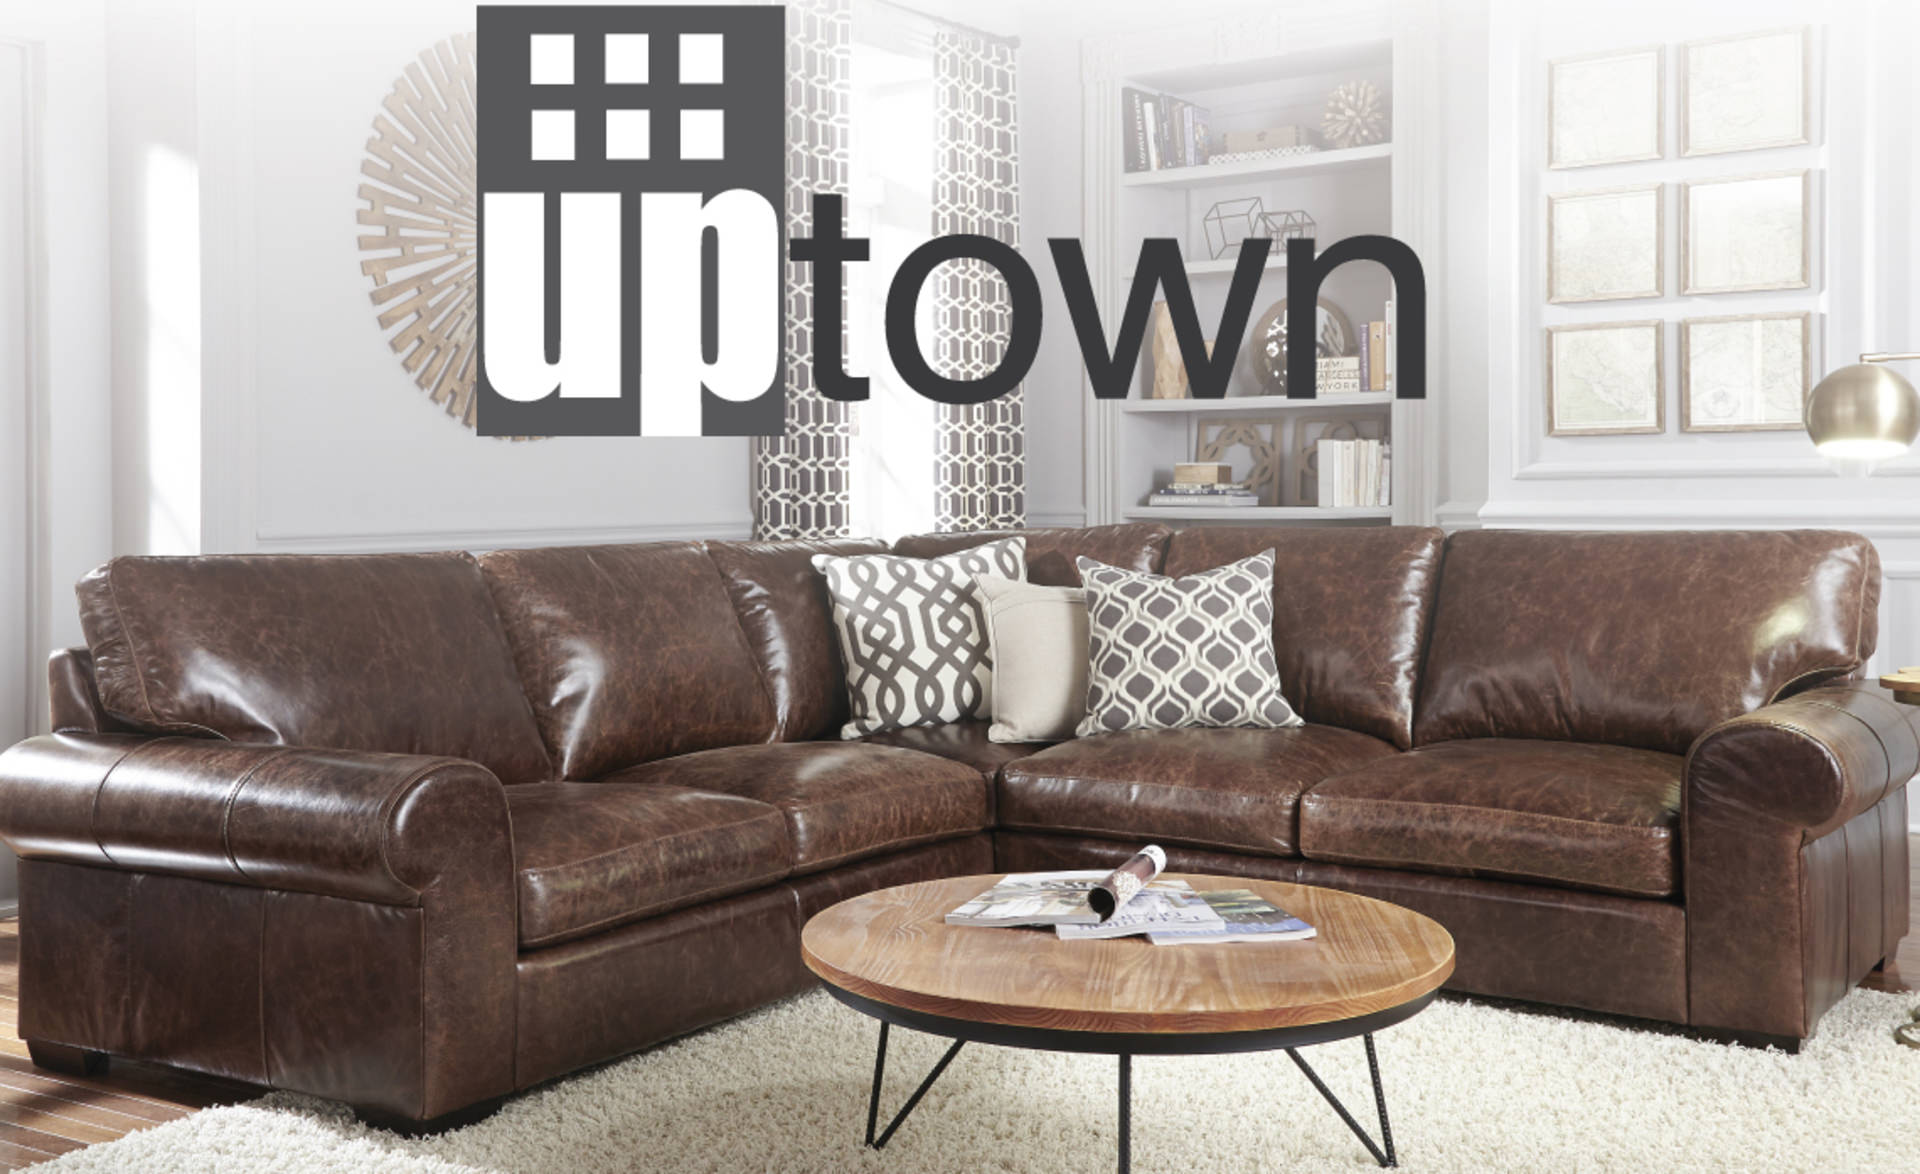 Tips Before Purchasing Modern Furniture And Furnishings For Your Home